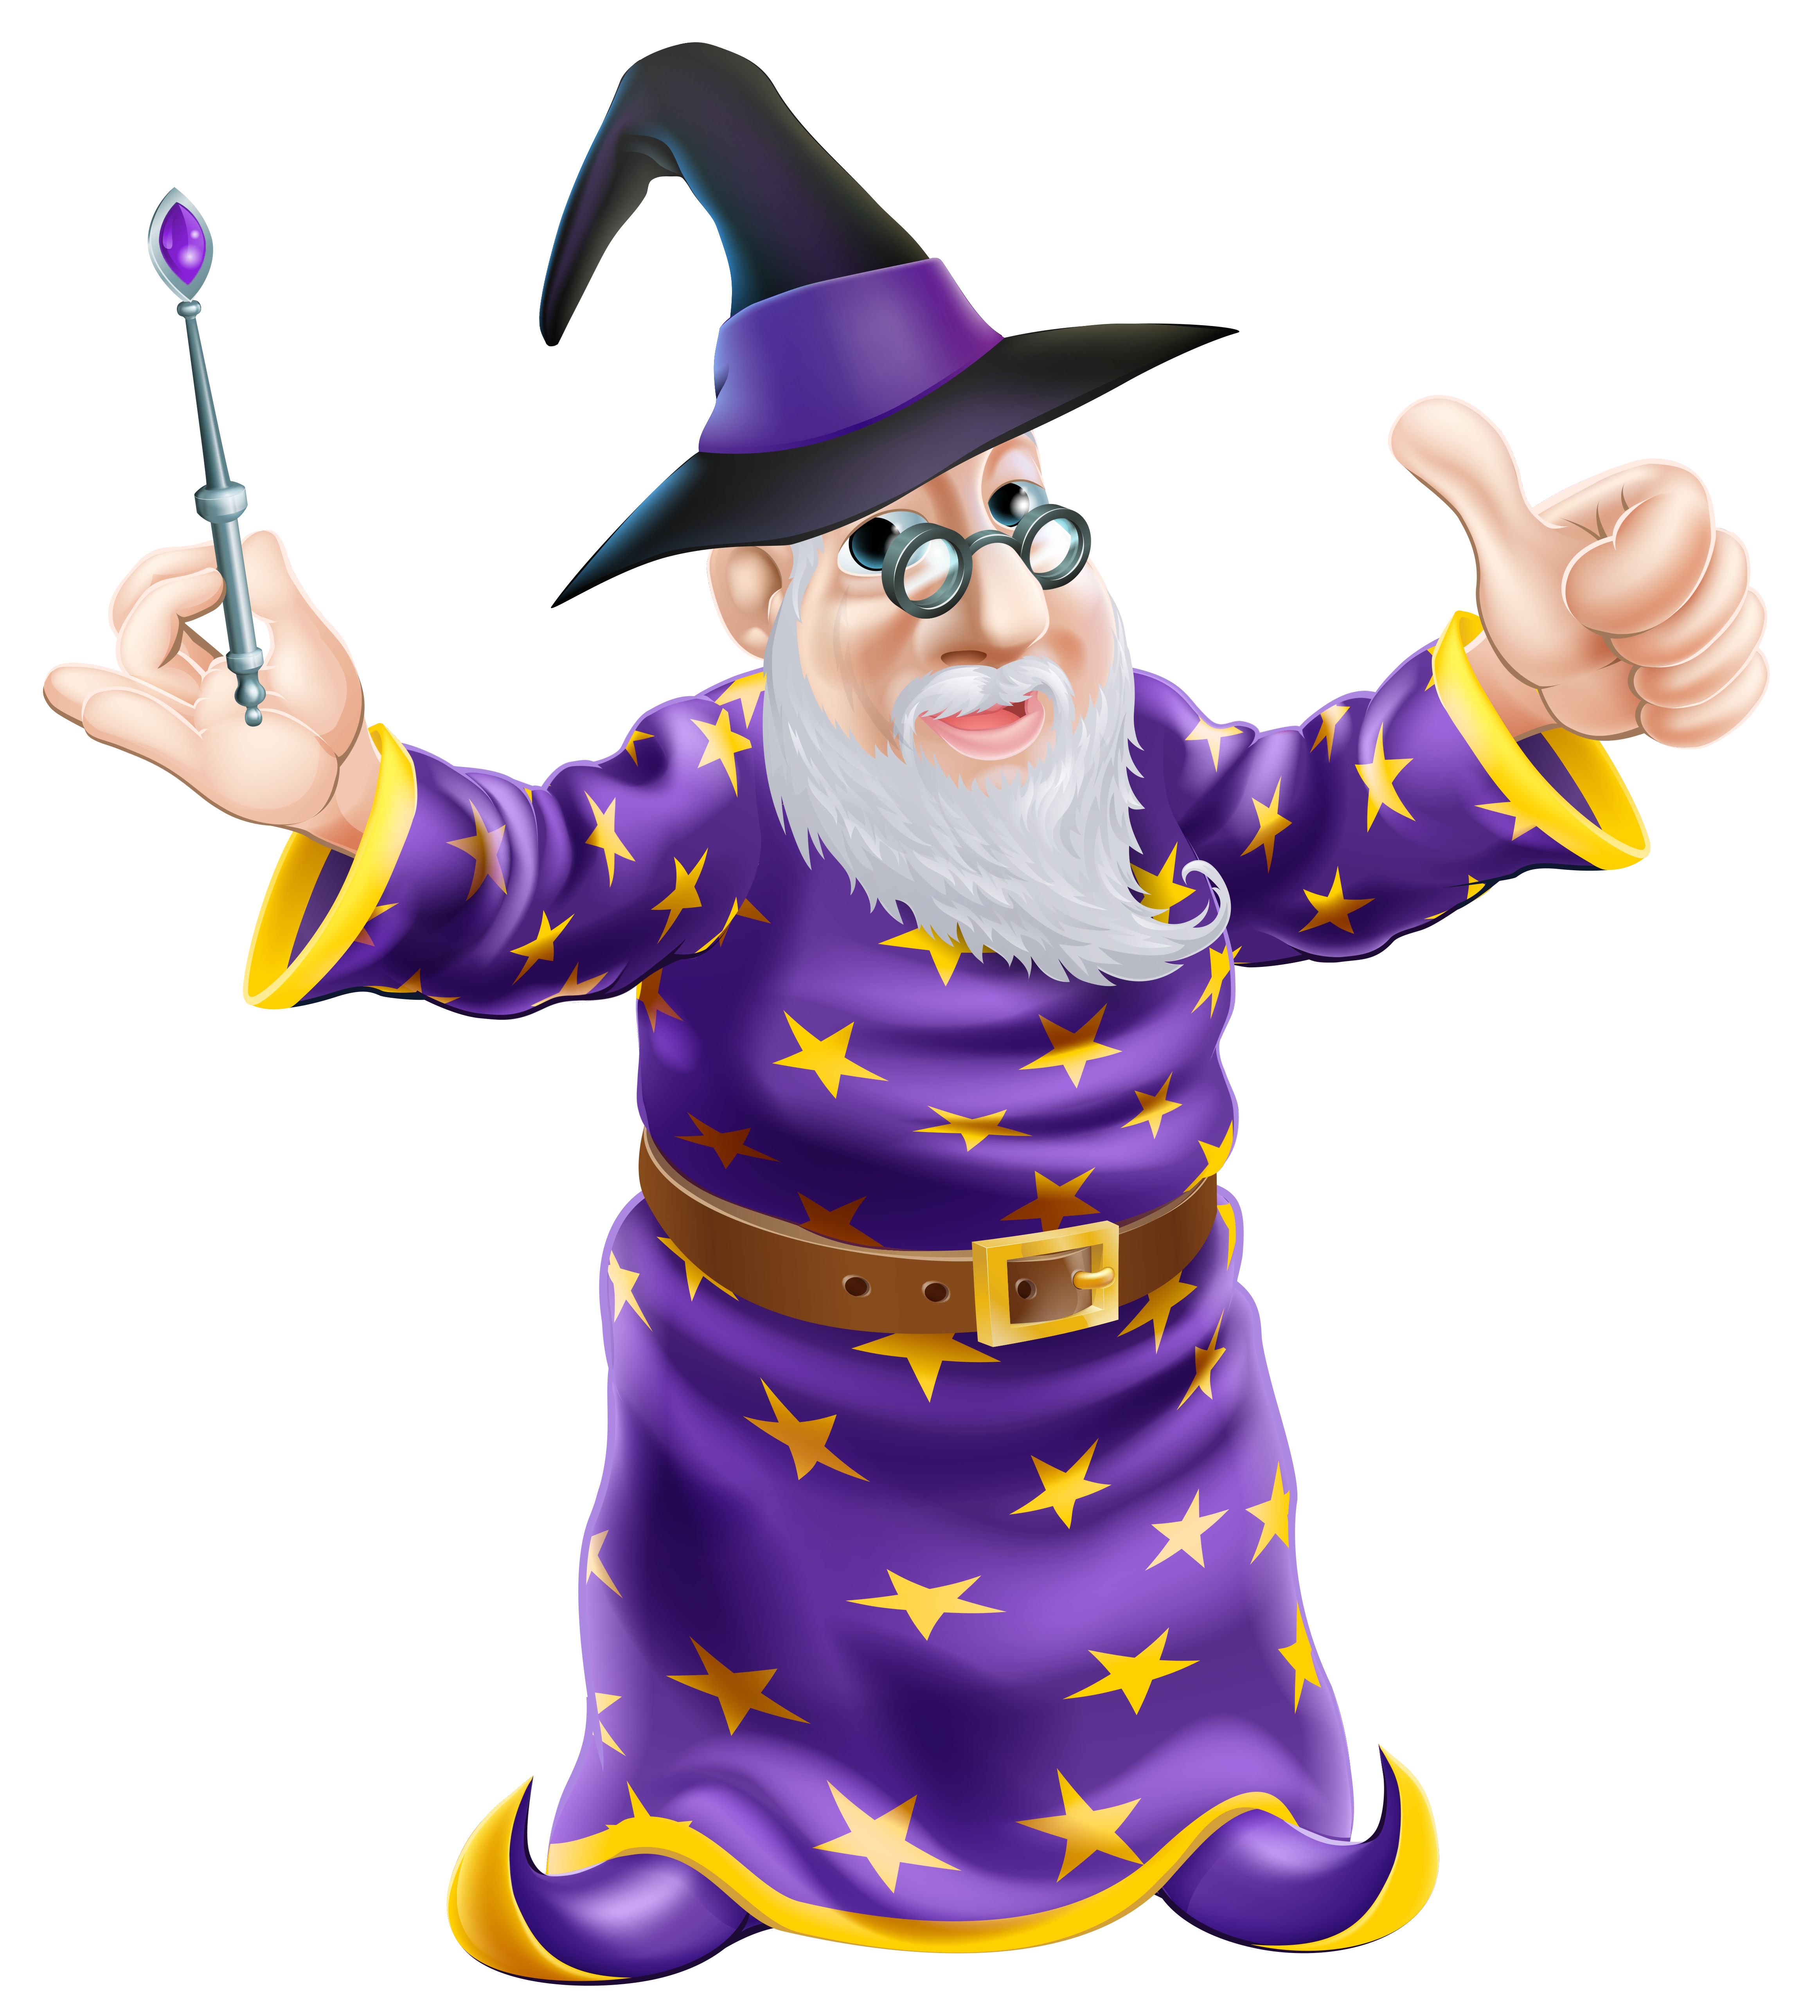 Wizard clipart free download jpg freeuse download Free Wizard Cliparts, Download Free Clip Art, Free Clip Art ... jpg freeuse download